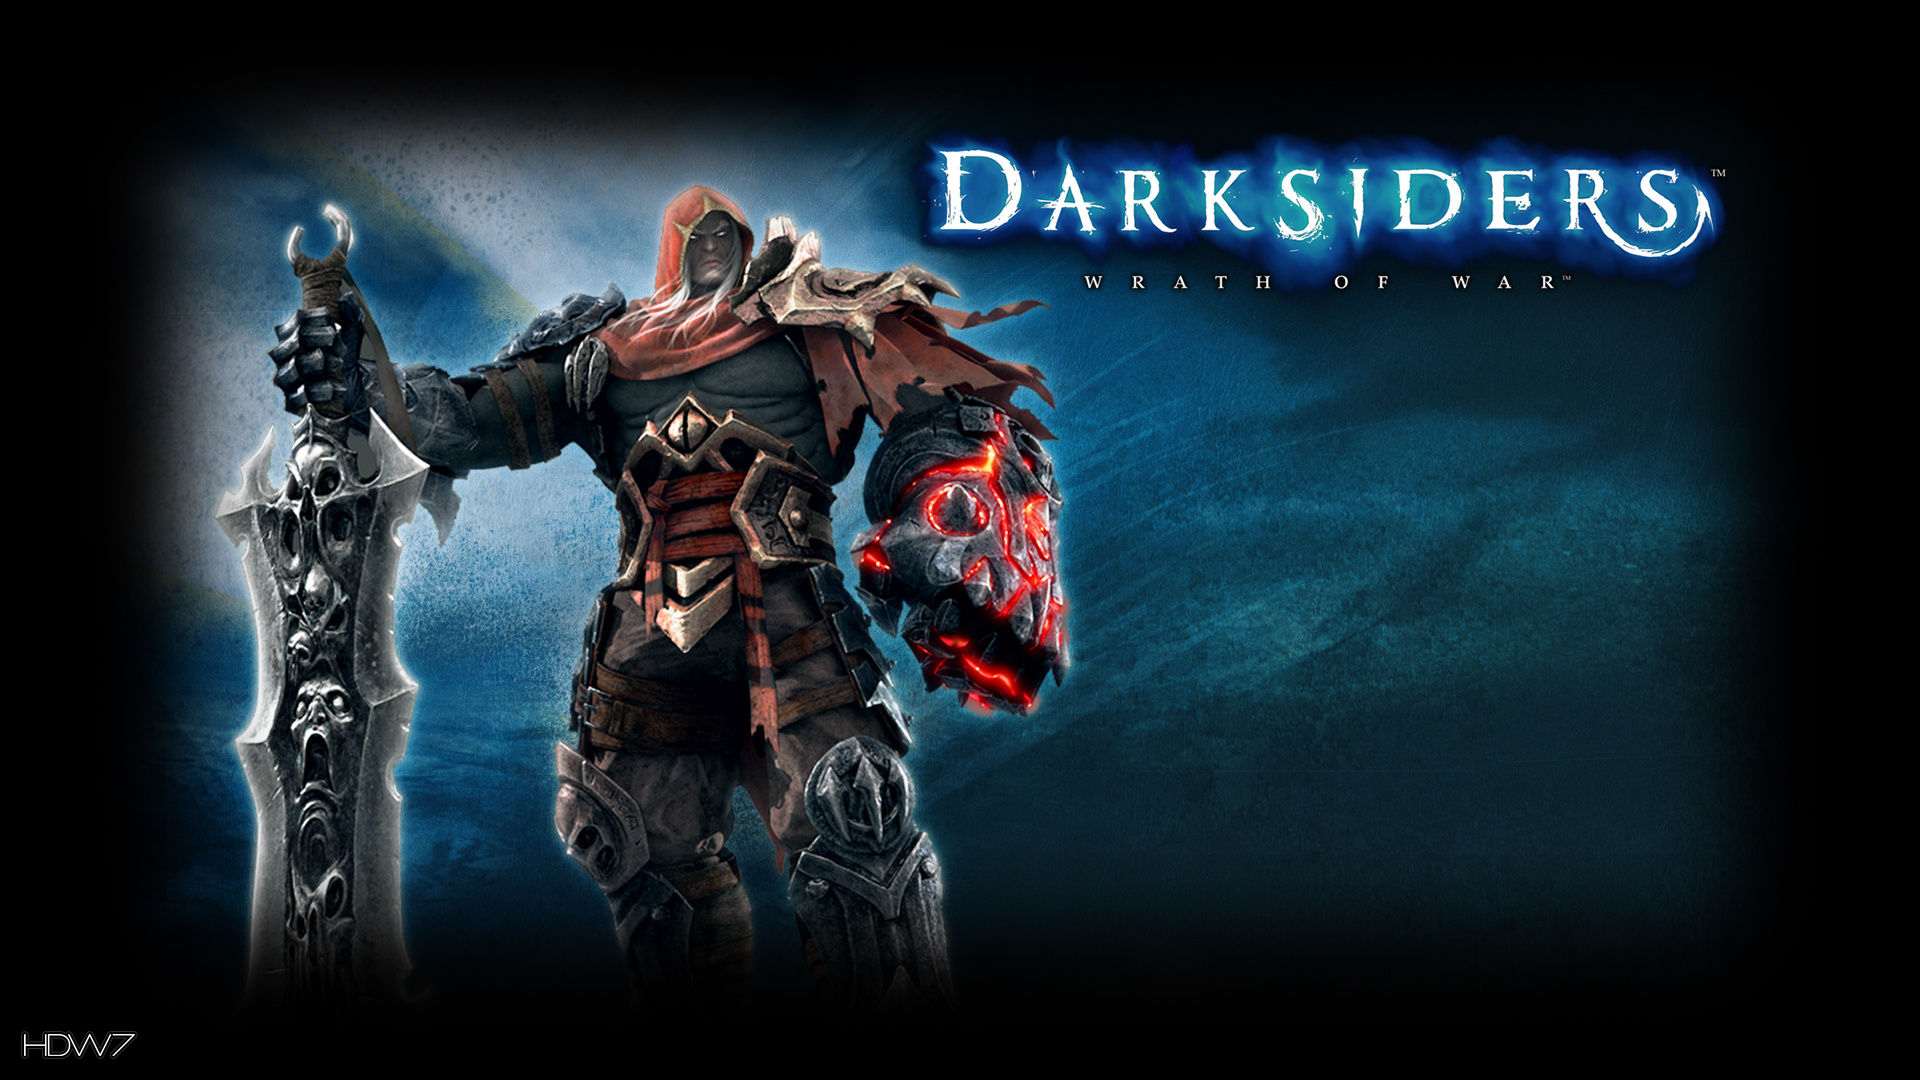 darksiders wrath of war quest of revenge widescreen hd wallpaper